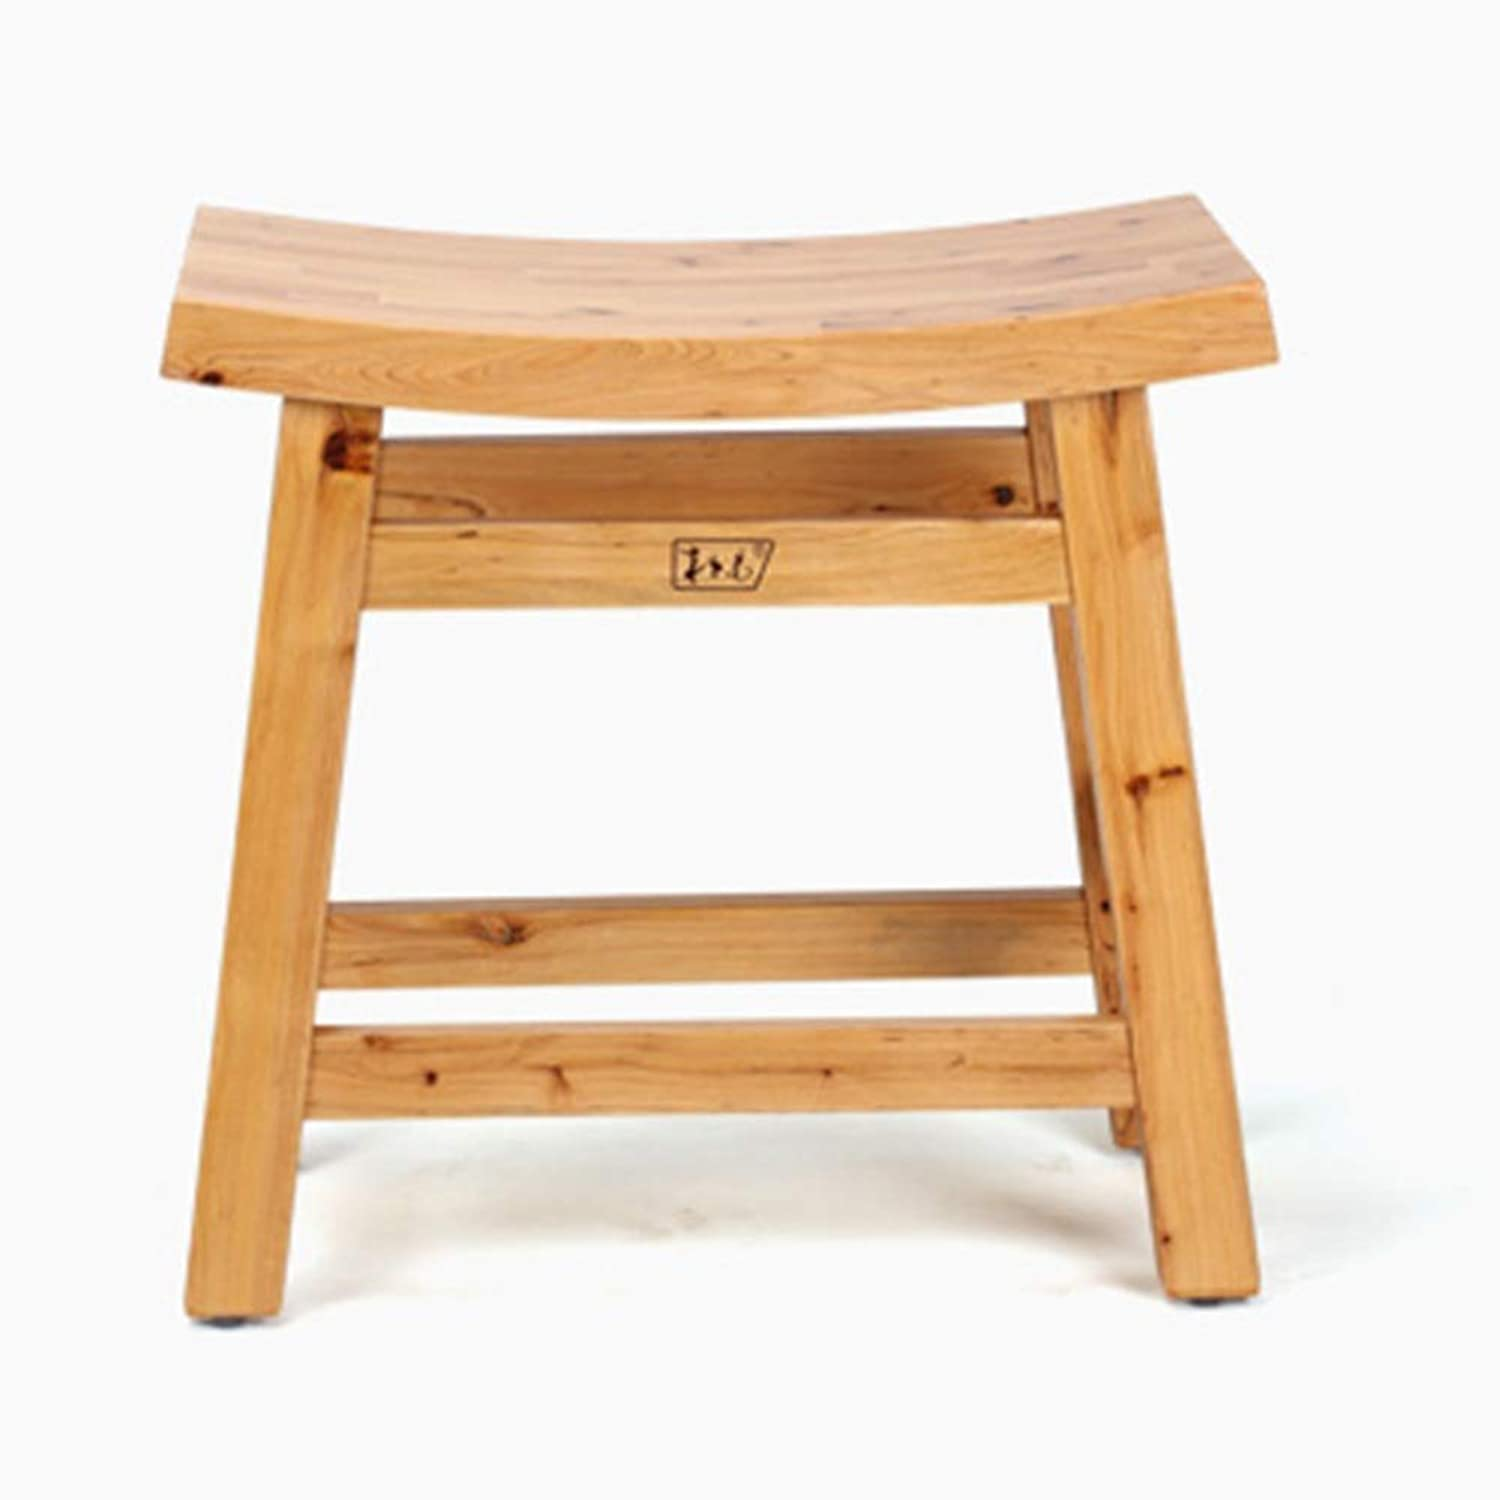 ZHANGQIANG Home Stool, Solid Wood Small Stool, Small Square Stool, Small Wooden Stool, shoes Stool, Coffee Table Stool (color   Wood color, Size   24.8  44.8  43.5cm)